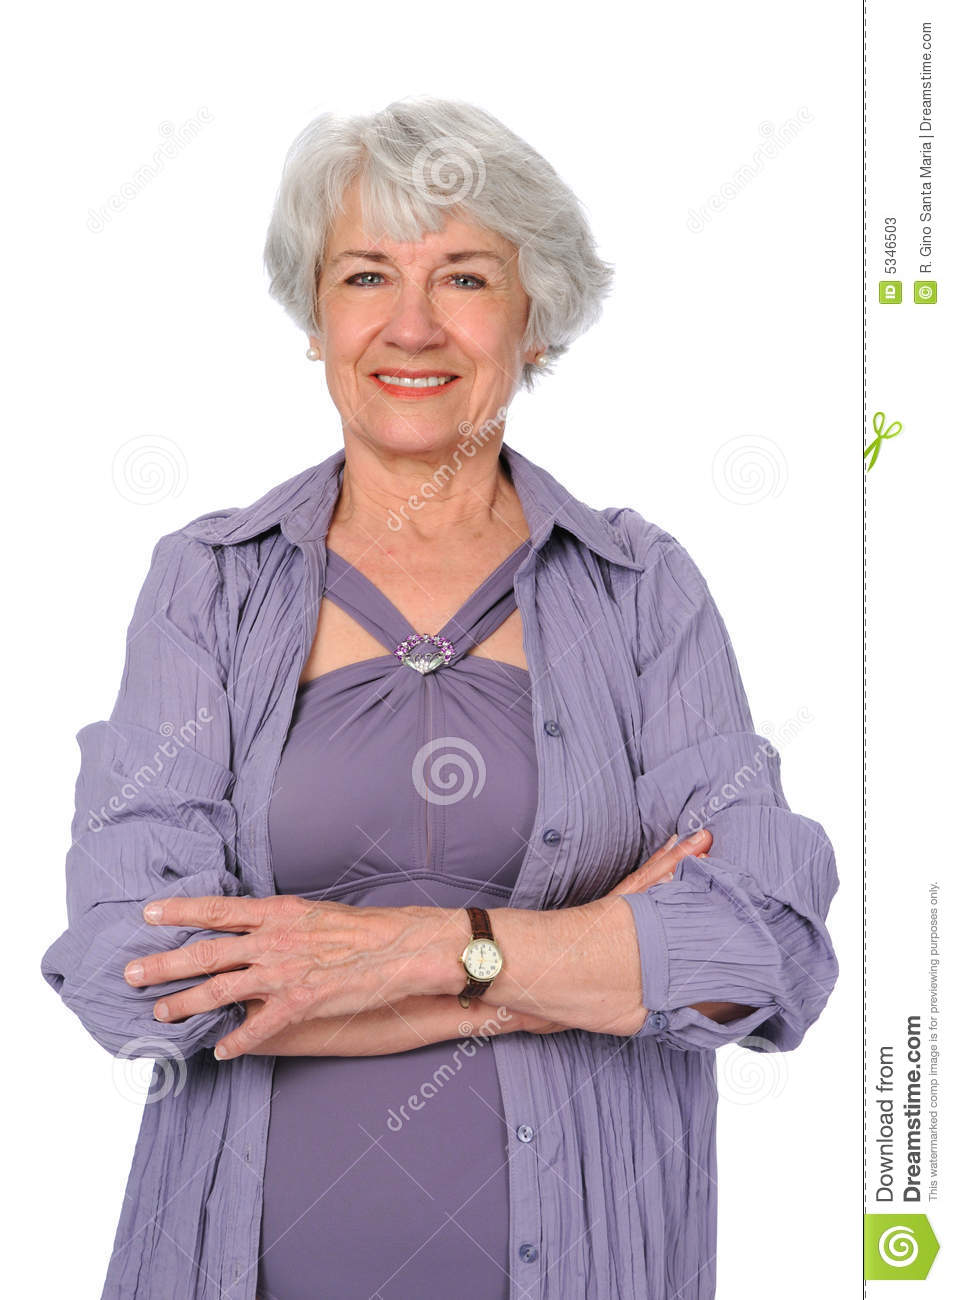 Senior Citizen Woman Stock Image Image Of Retirement